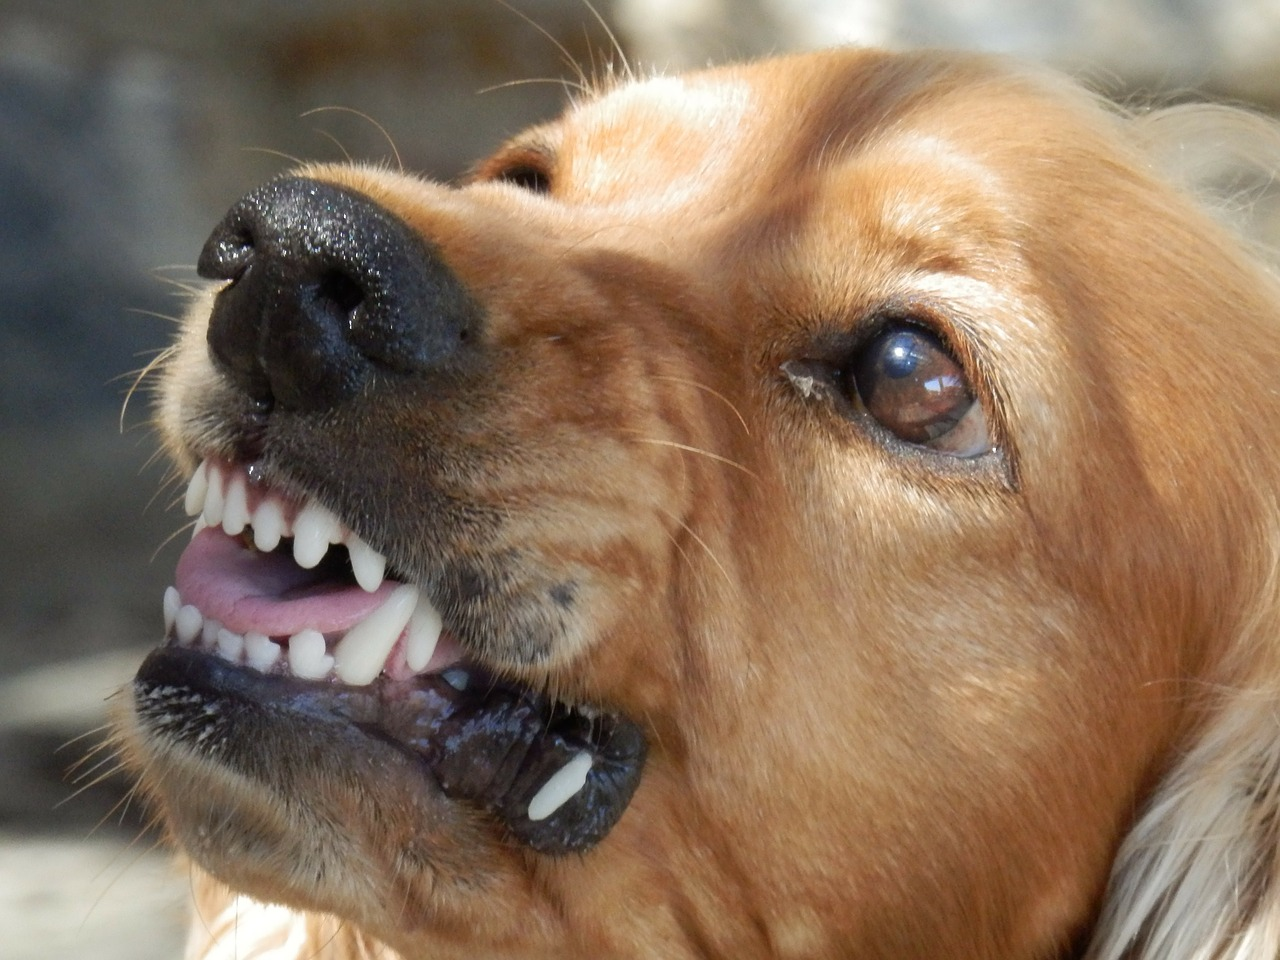 When The Bite Is Worse Than The Bark: Dealing With A Dog Bite